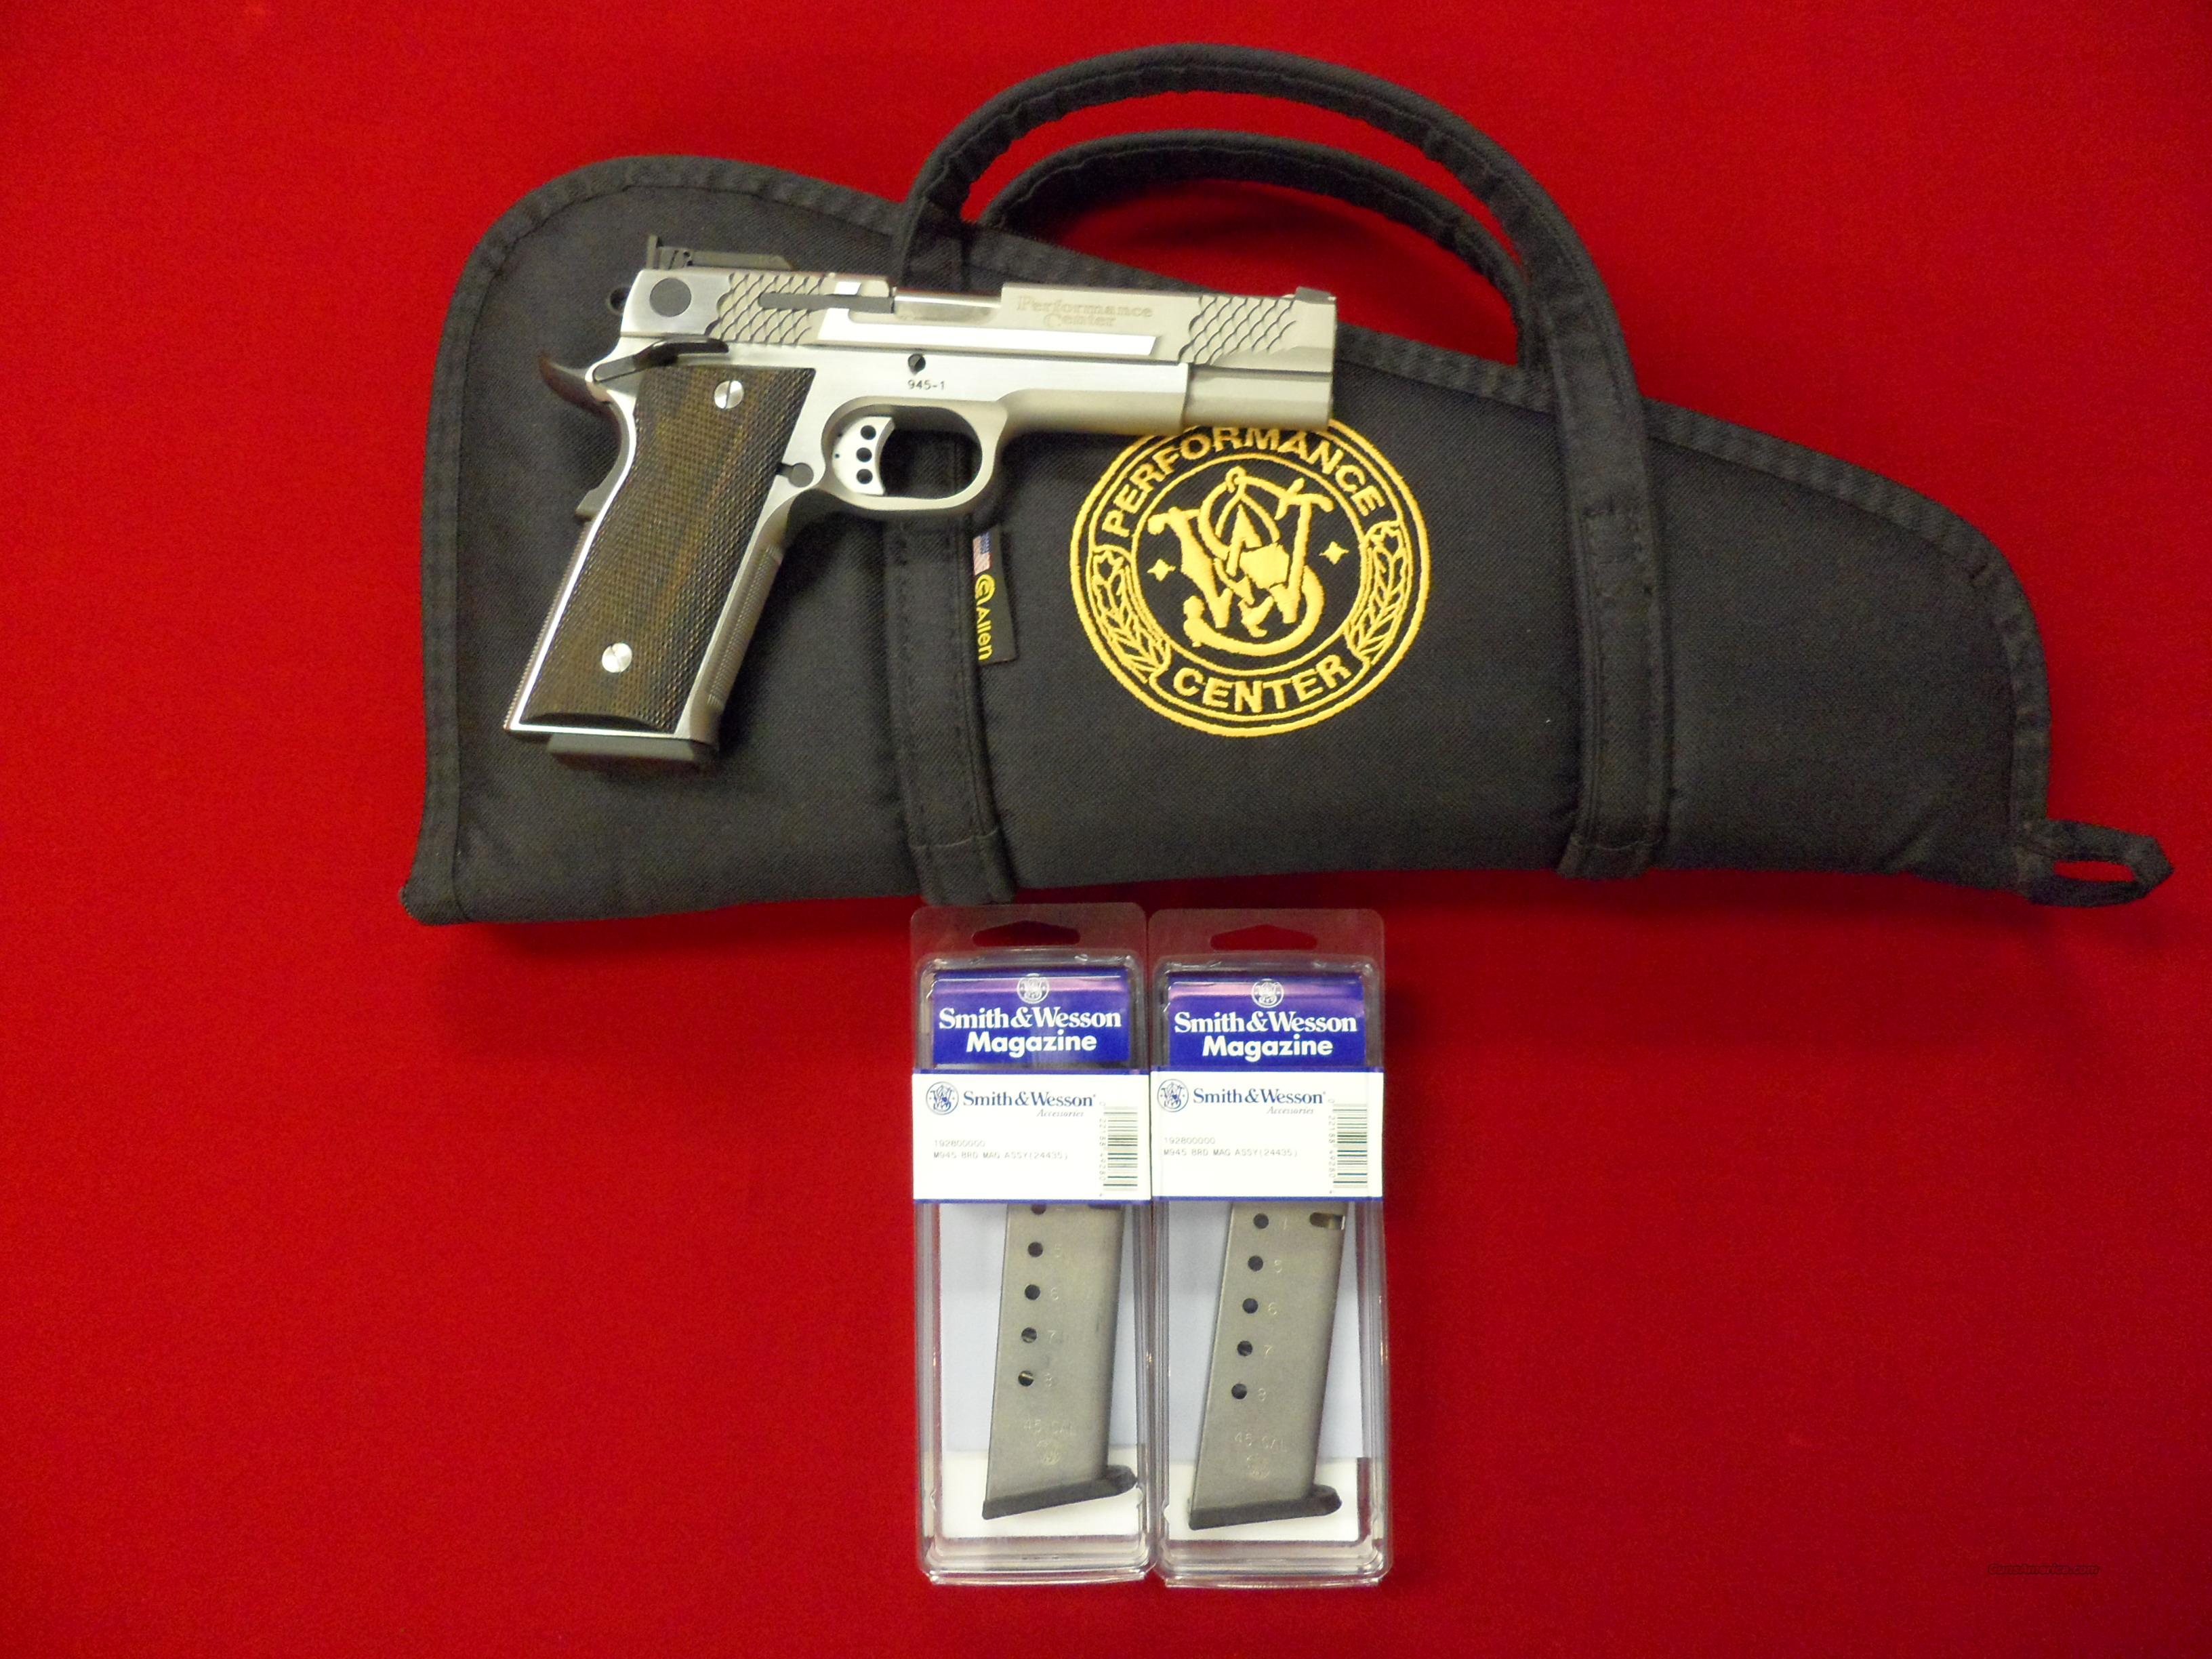 Smith & Wesson 45cal Model 945 New   Guns > Pistols > Smith & Wesson Pistols - Autos > Steel Frame